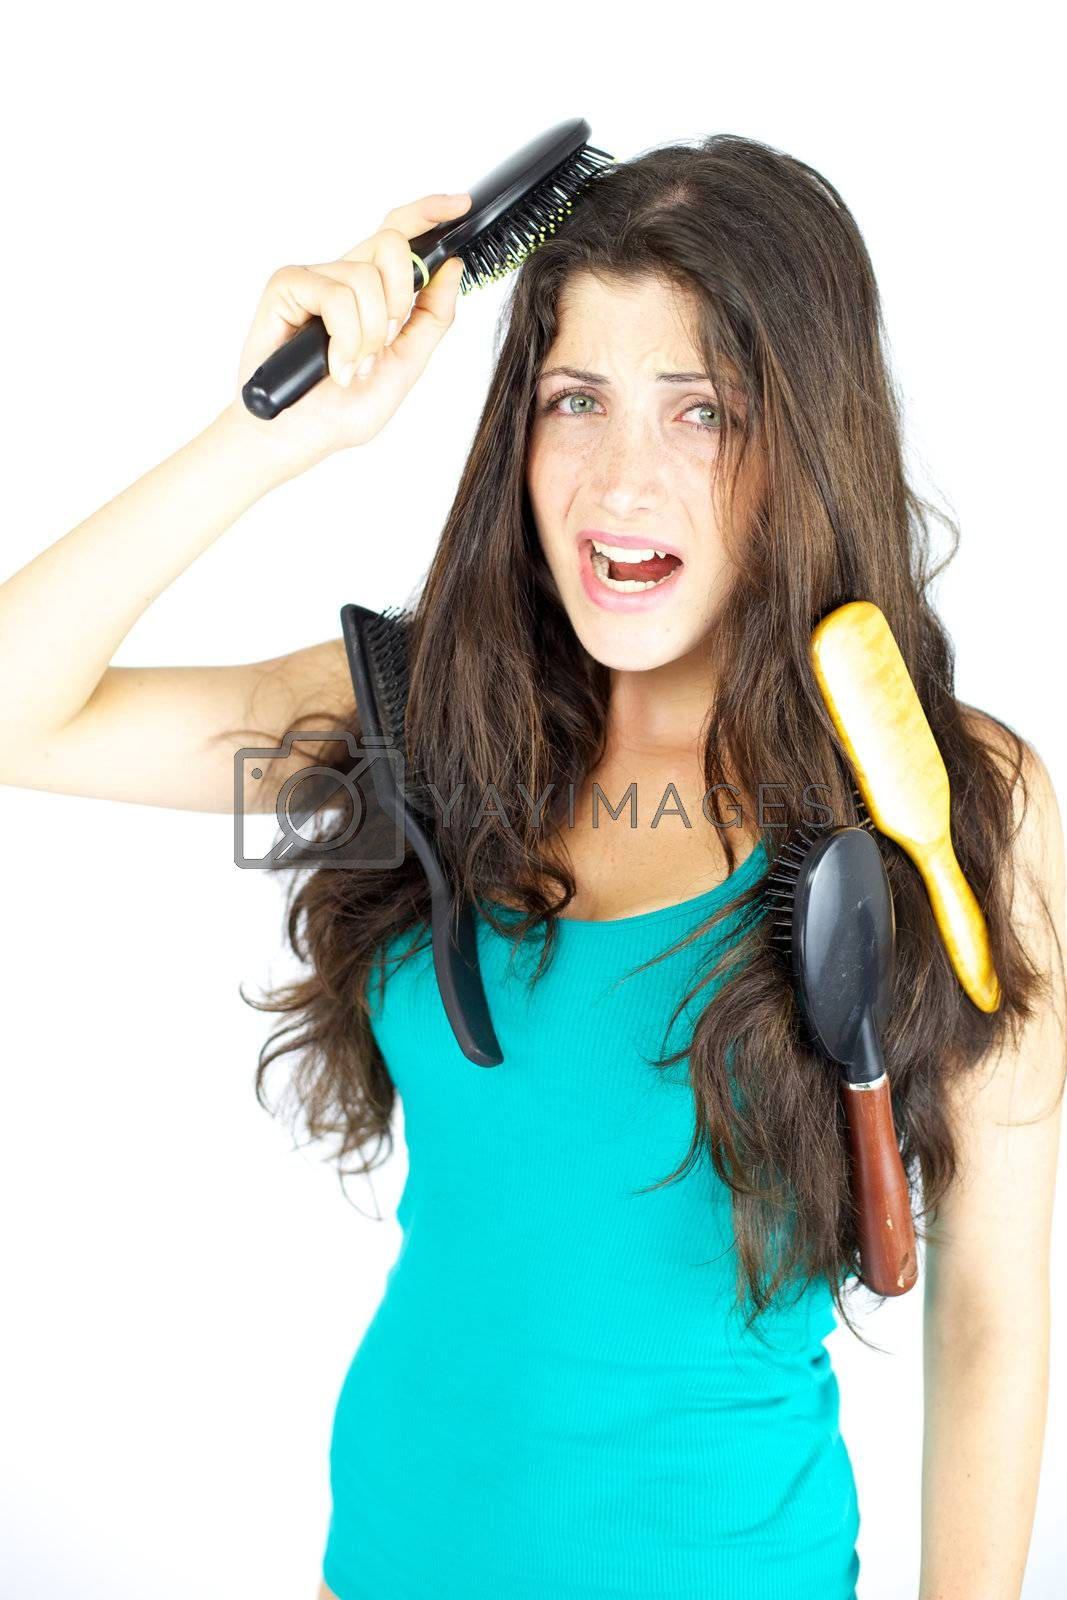 Woman stuck with brushes in her hair screaming loud, tangled hair